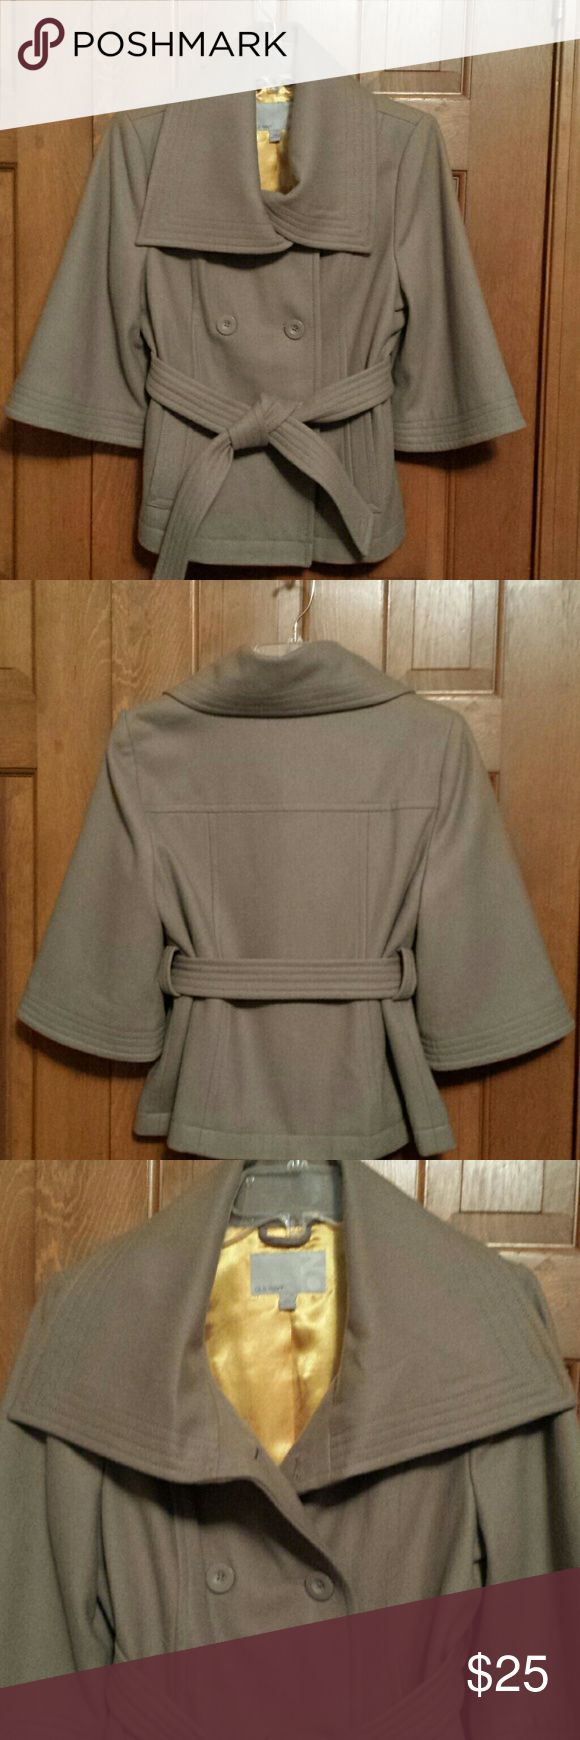 Chic Old Navy Camel Jacket sz Medium Excellent condition, wool, polyester and rayon. Great addition to any wardrobe. Old Navy Jackets & Coats